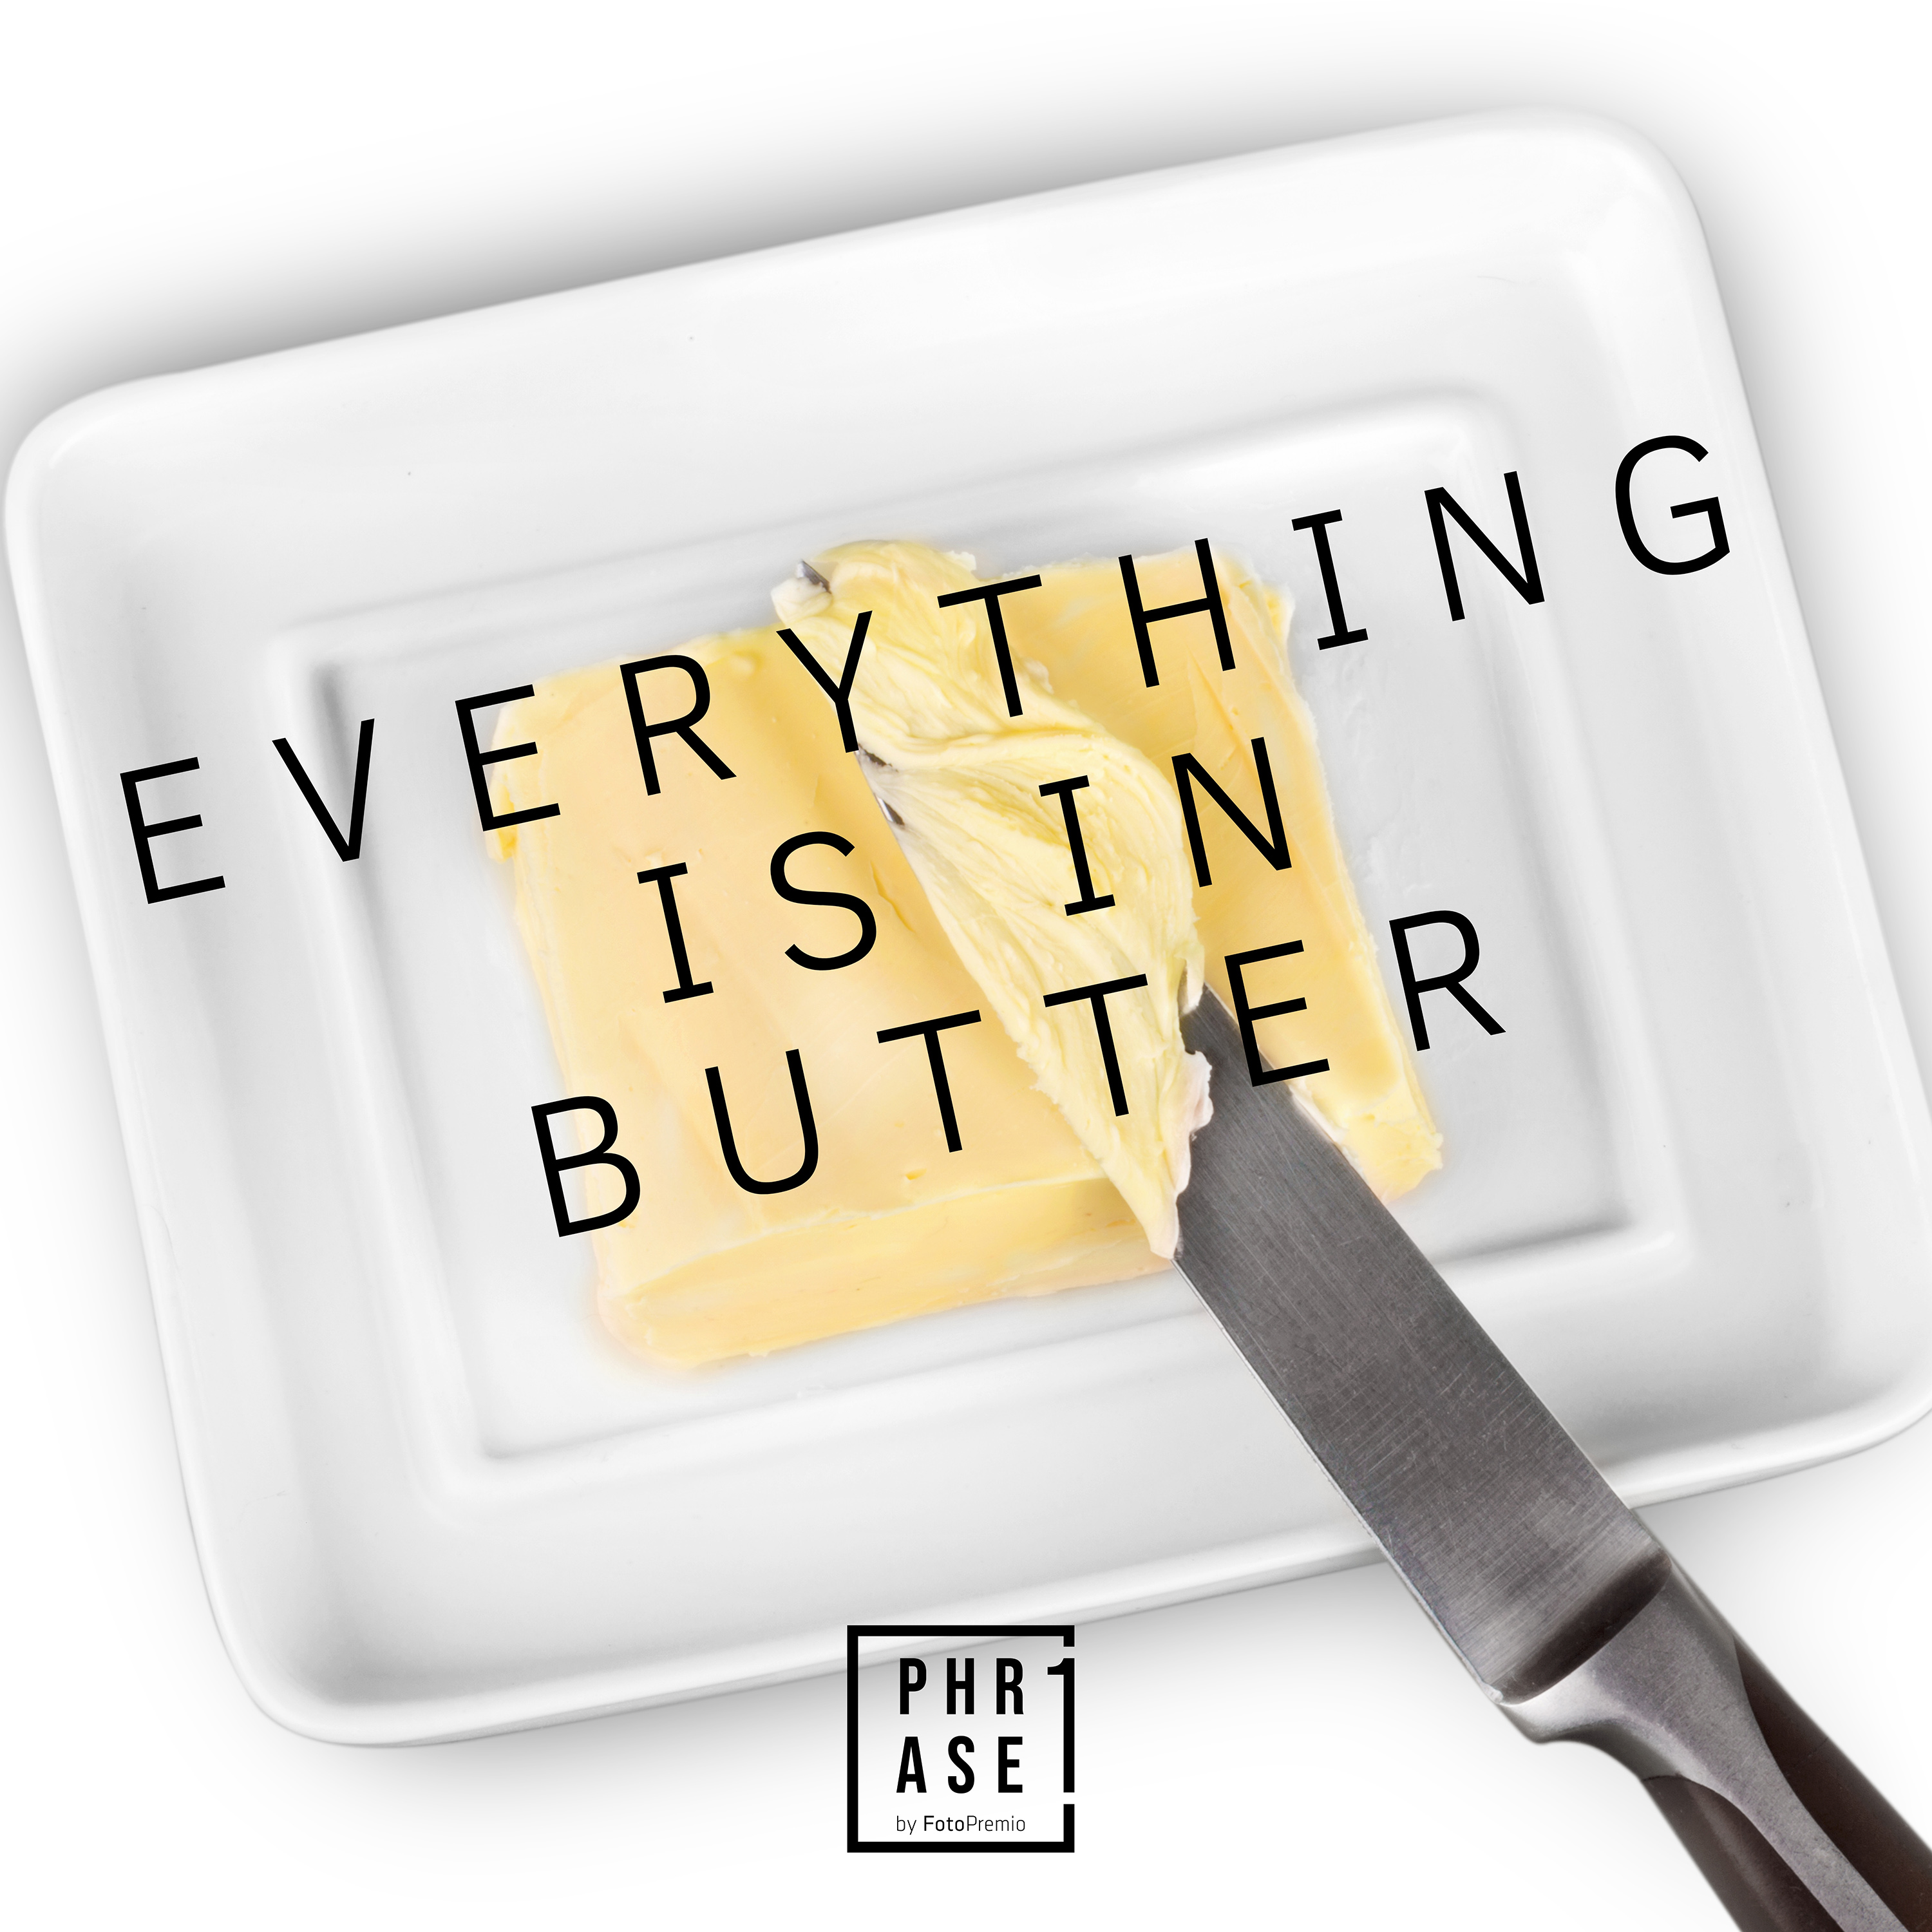 Everything is in butter